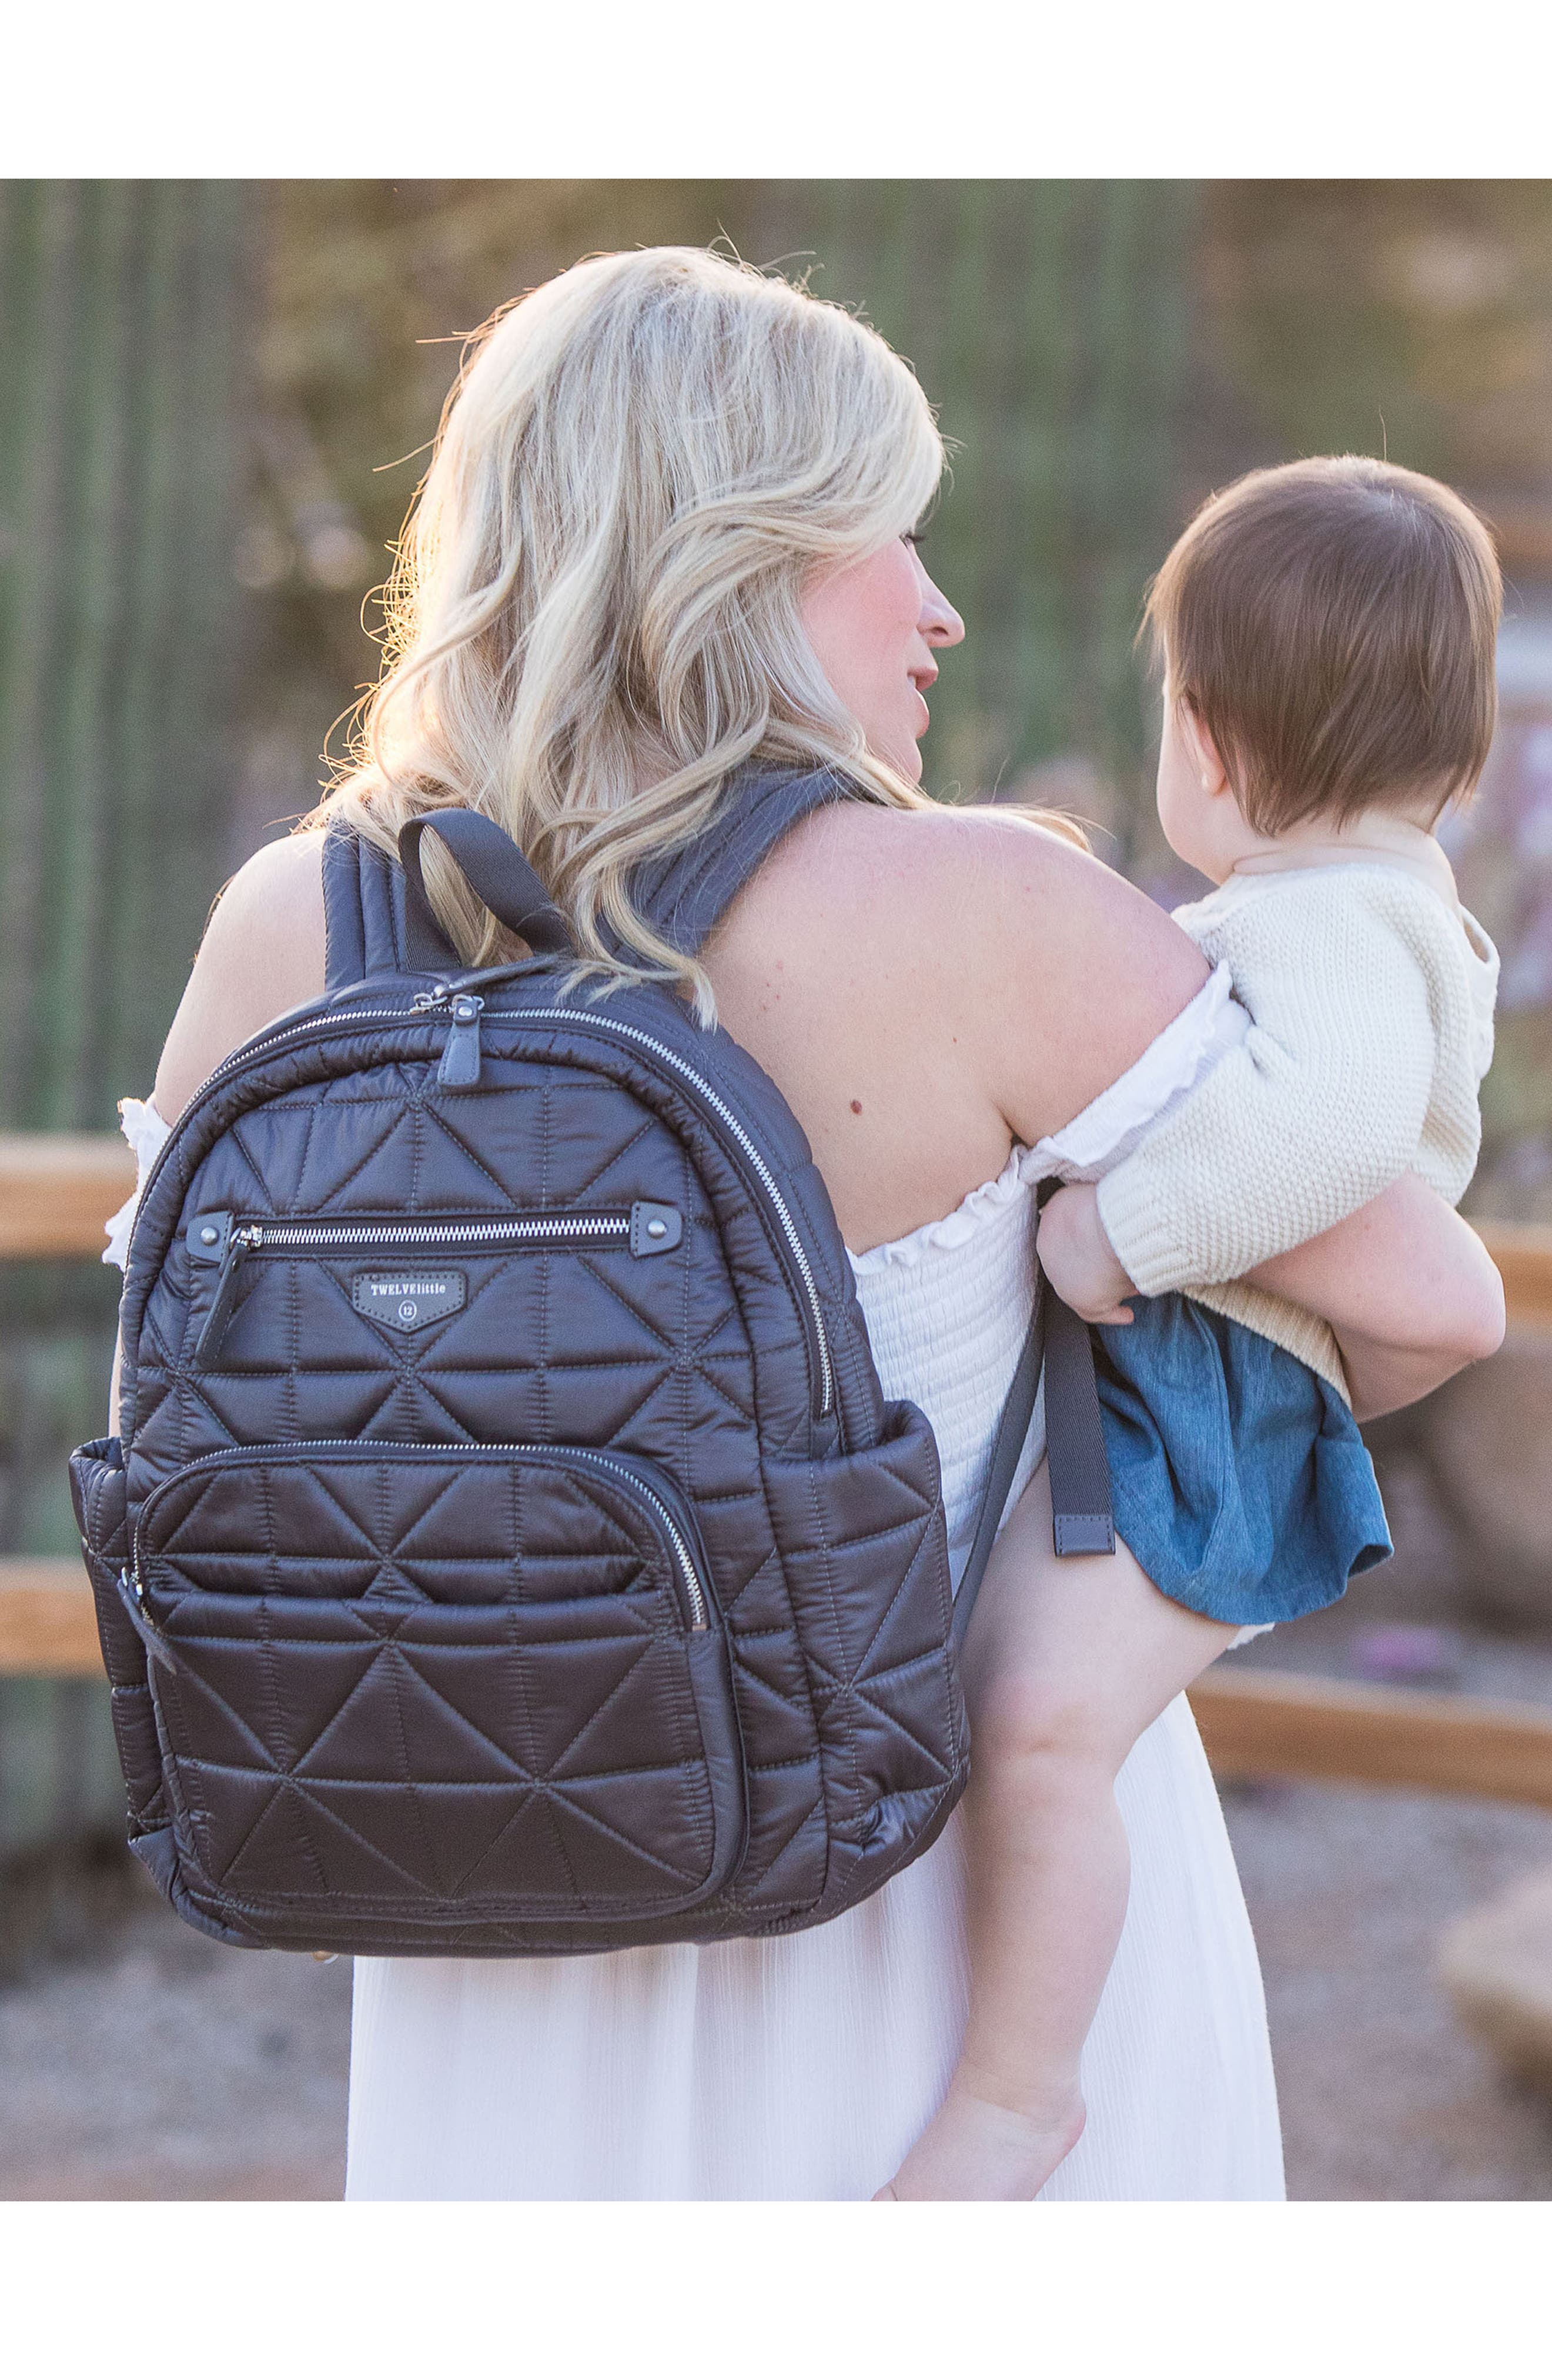 Companion Quilted Nylon Diaper Backpack,                             Alternate thumbnail 5, color,                             PLATINUM